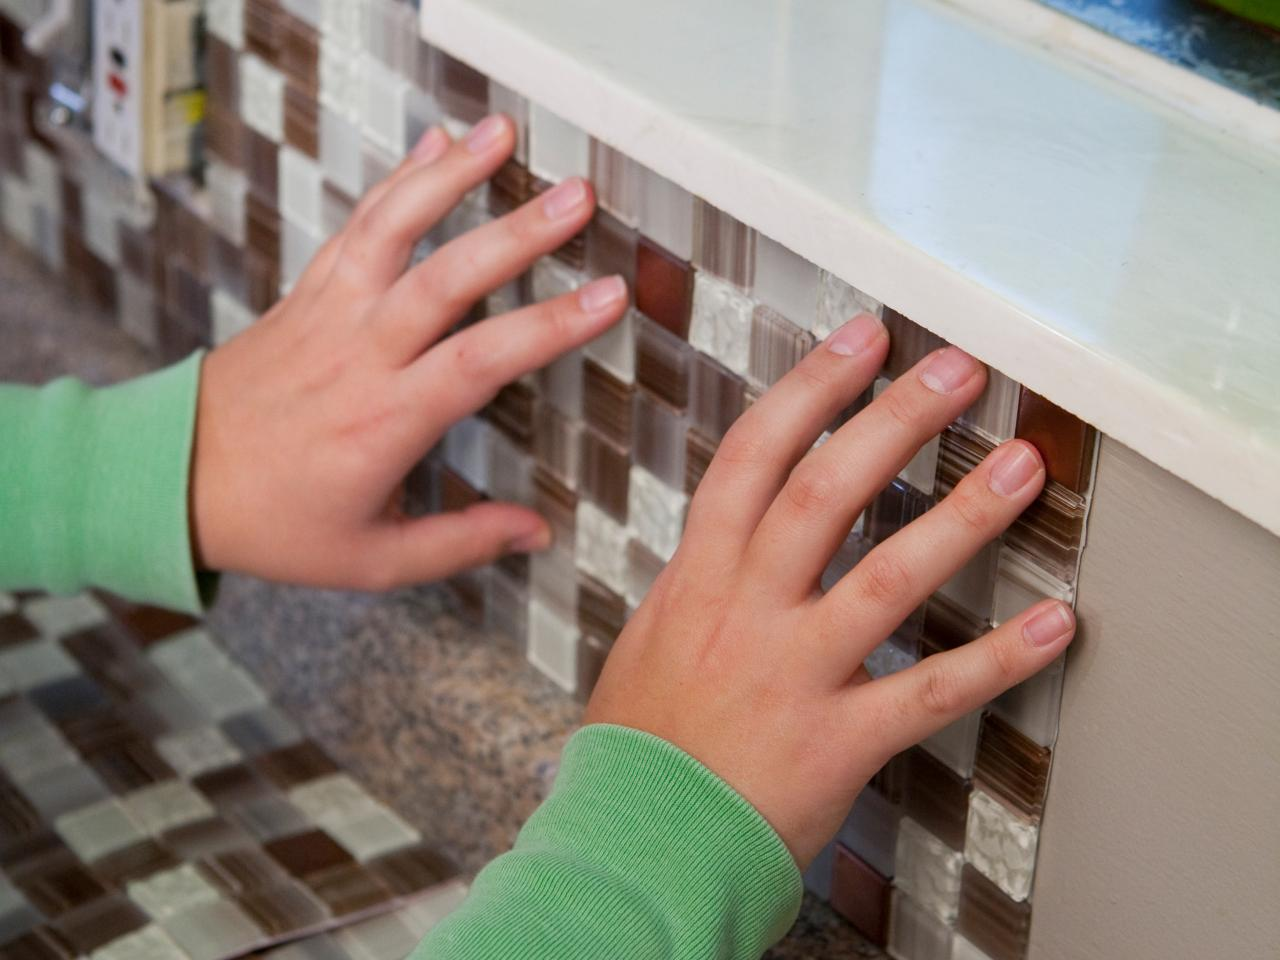 How to put up backsplash tile